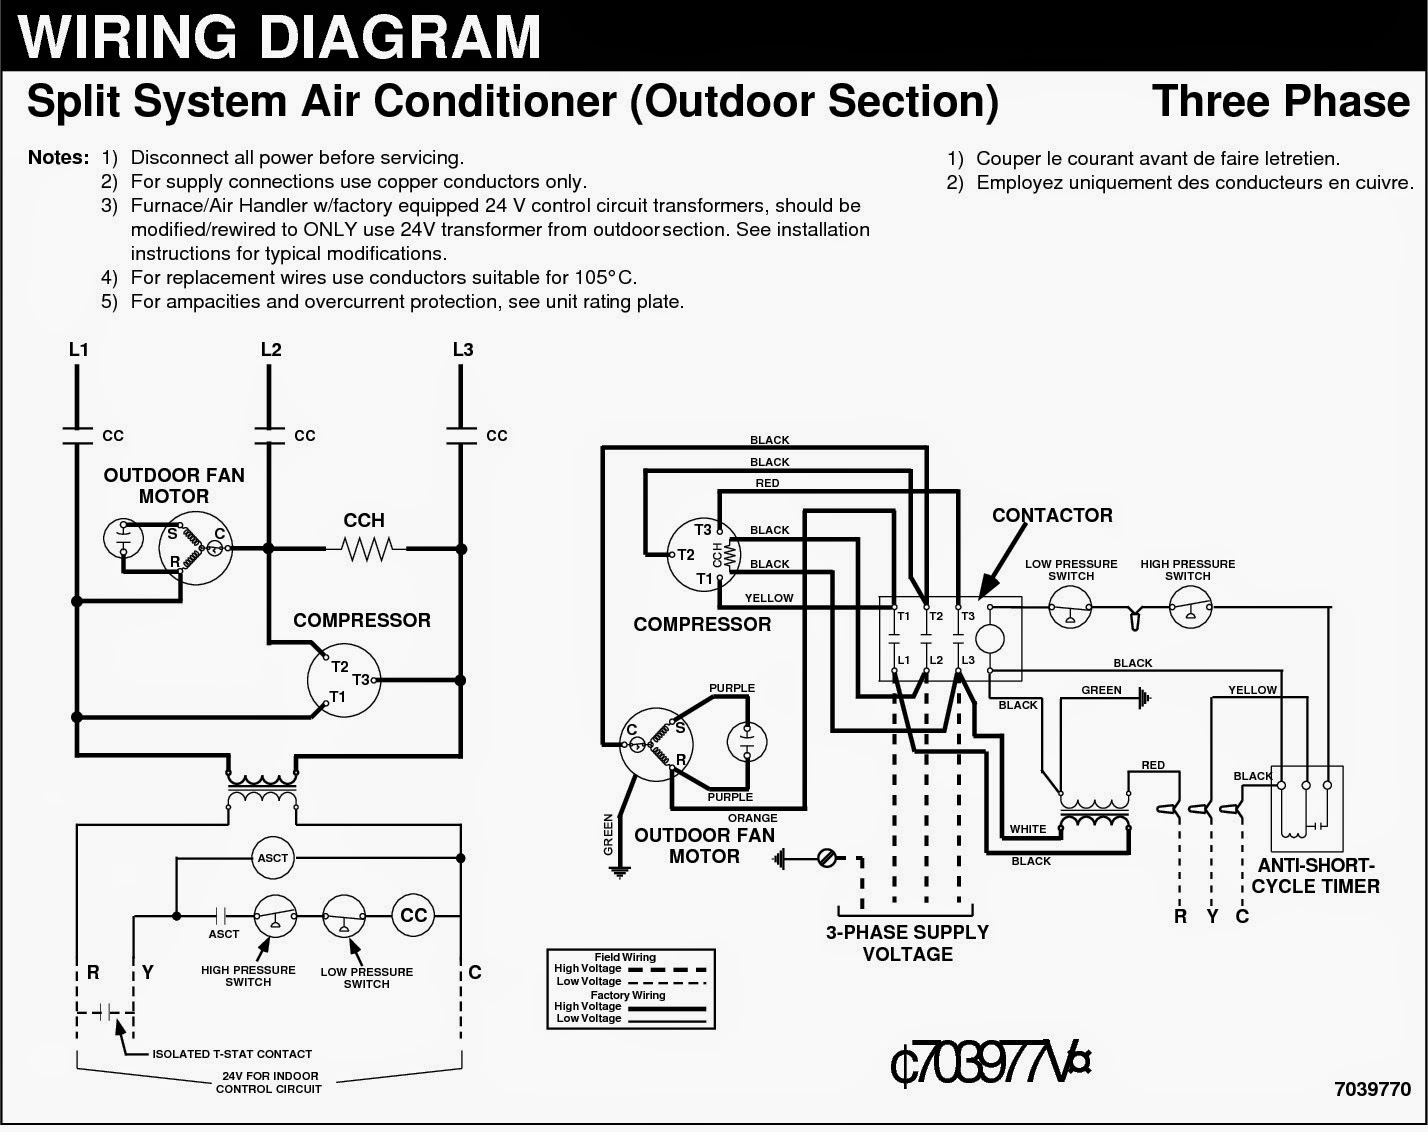 3+phase electrical wiring diagrams for air conditioning systems part two electrical control wiring diagrams at crackthecode.co